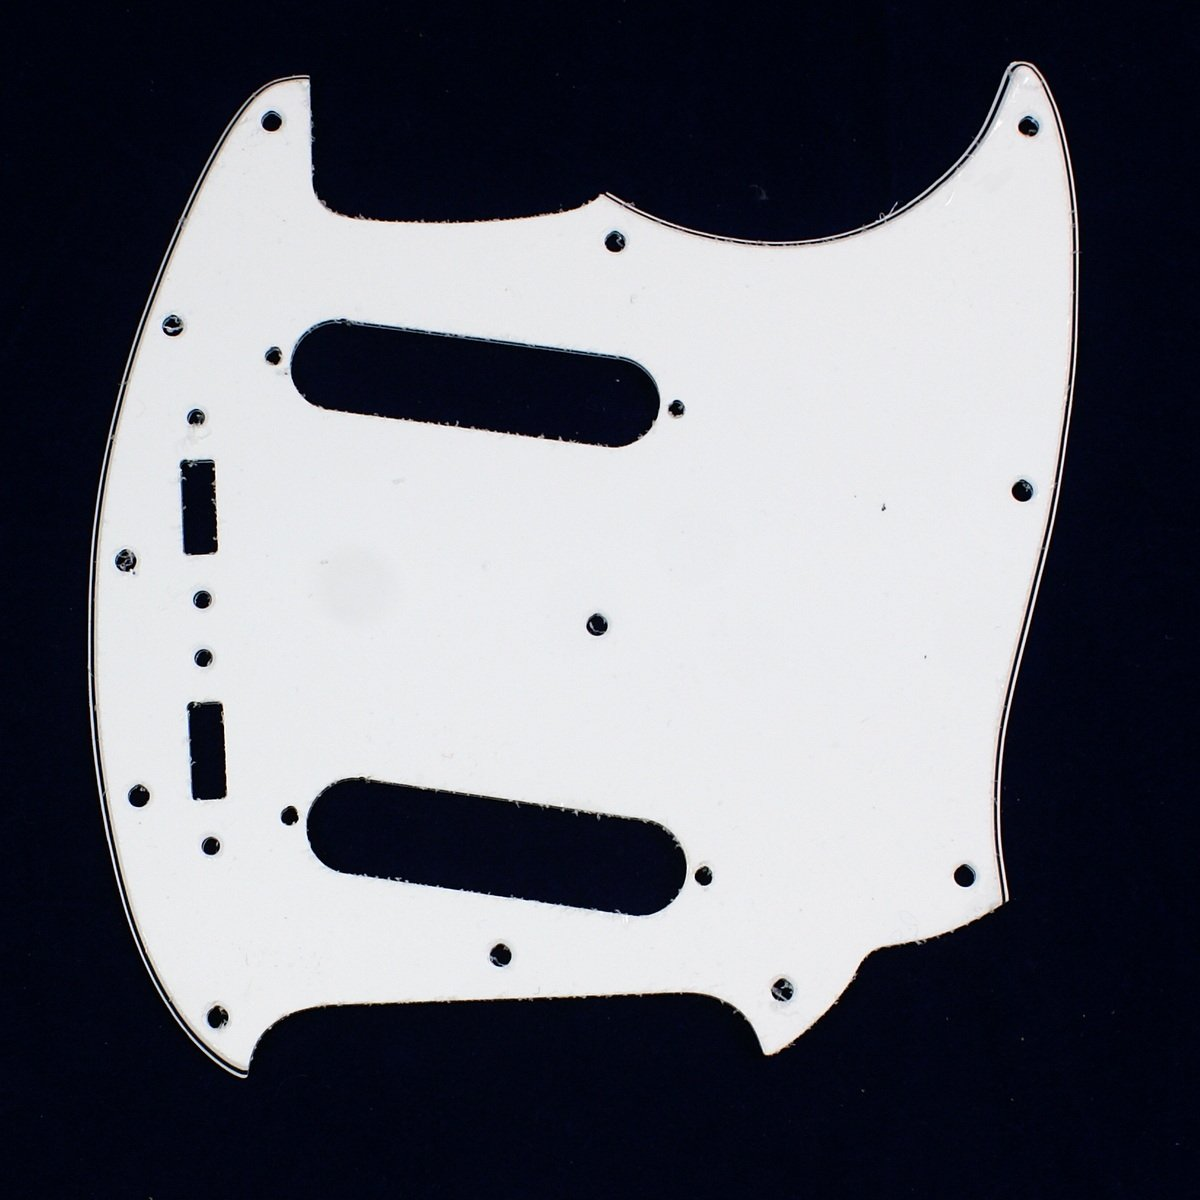 3 Ply Guitar Pickguard Fits Fender Mustang Classic Series - WHITE (A64)